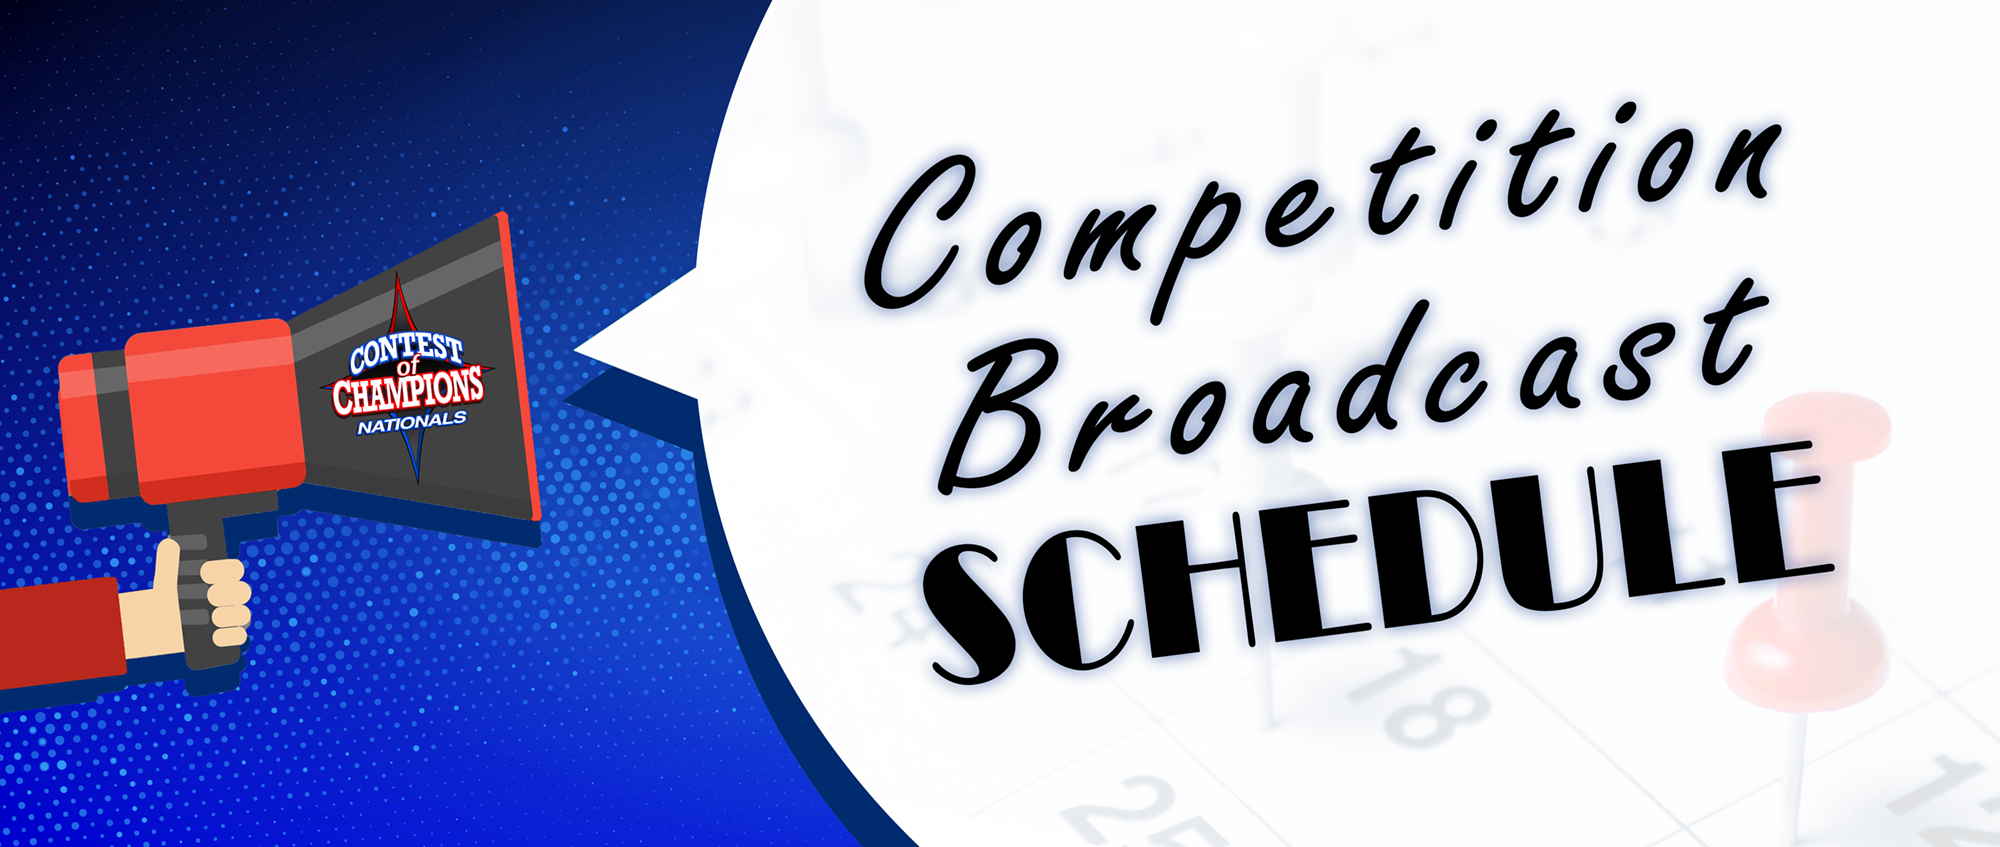 Contest of Champions Competition Broadcast Schedule Announcement